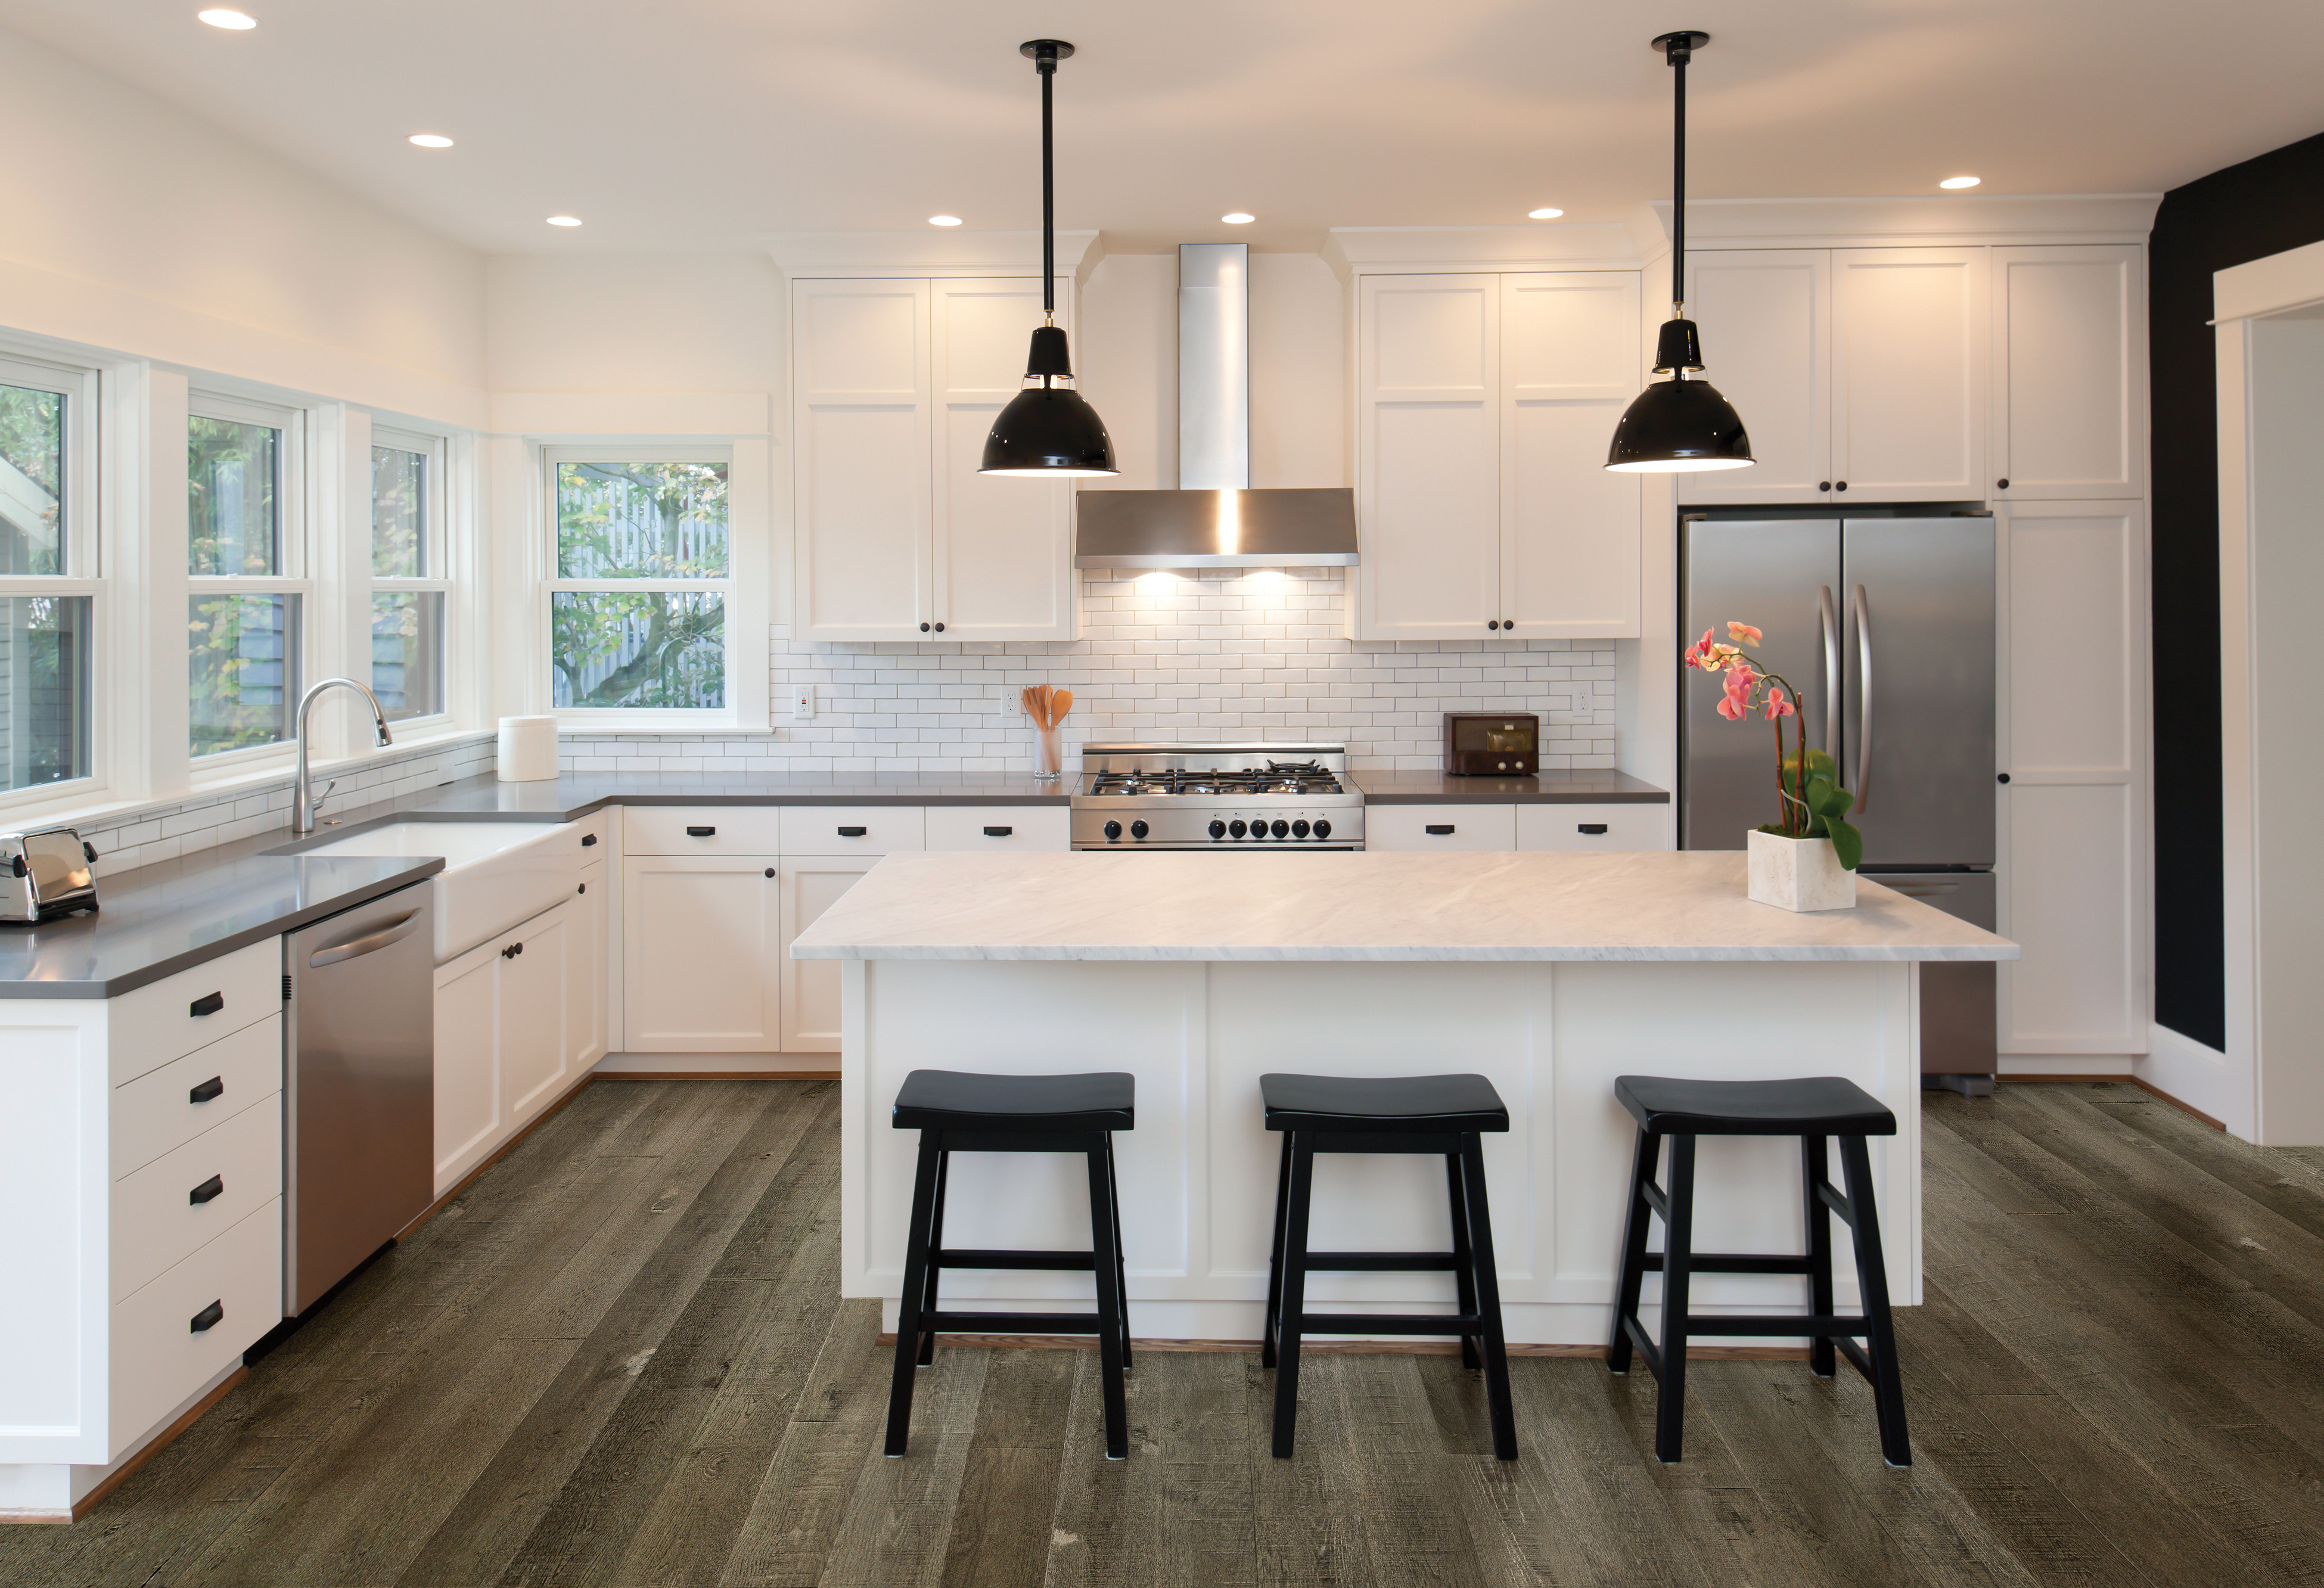 Image showing wood flooring in a kitchen.